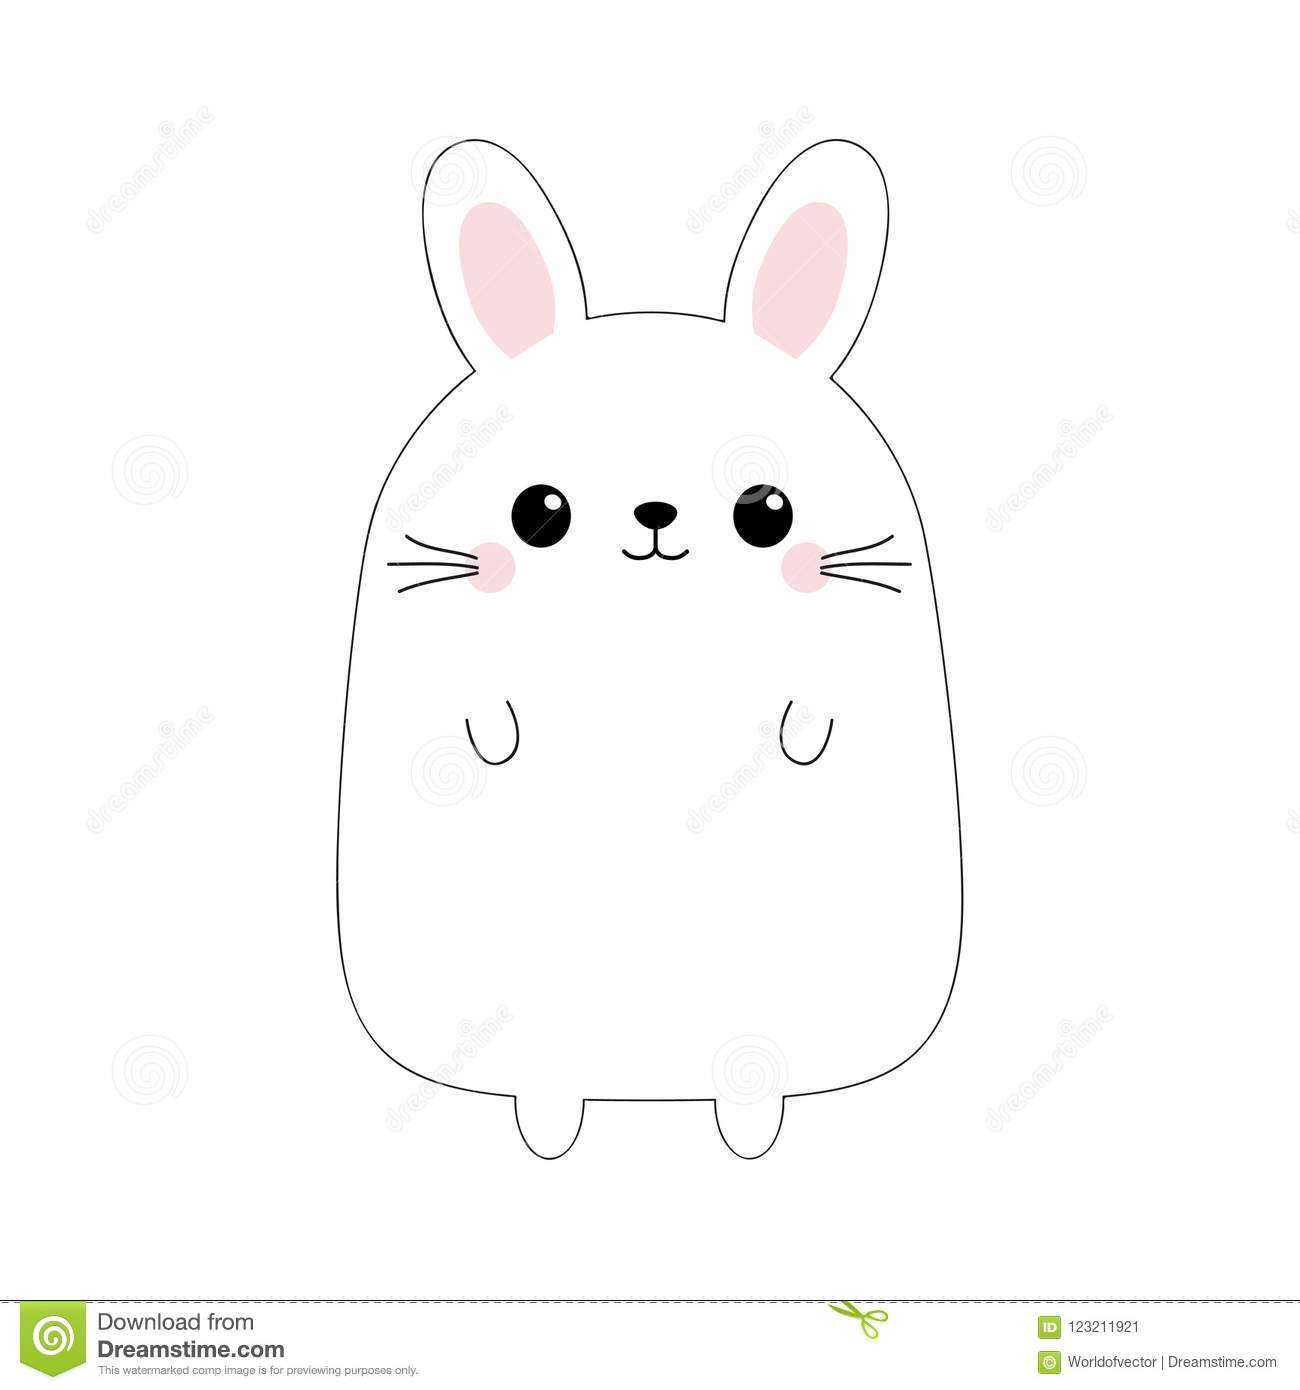 Bunny Rabbit Funny Head Face Doodle Linear Sketch Pink